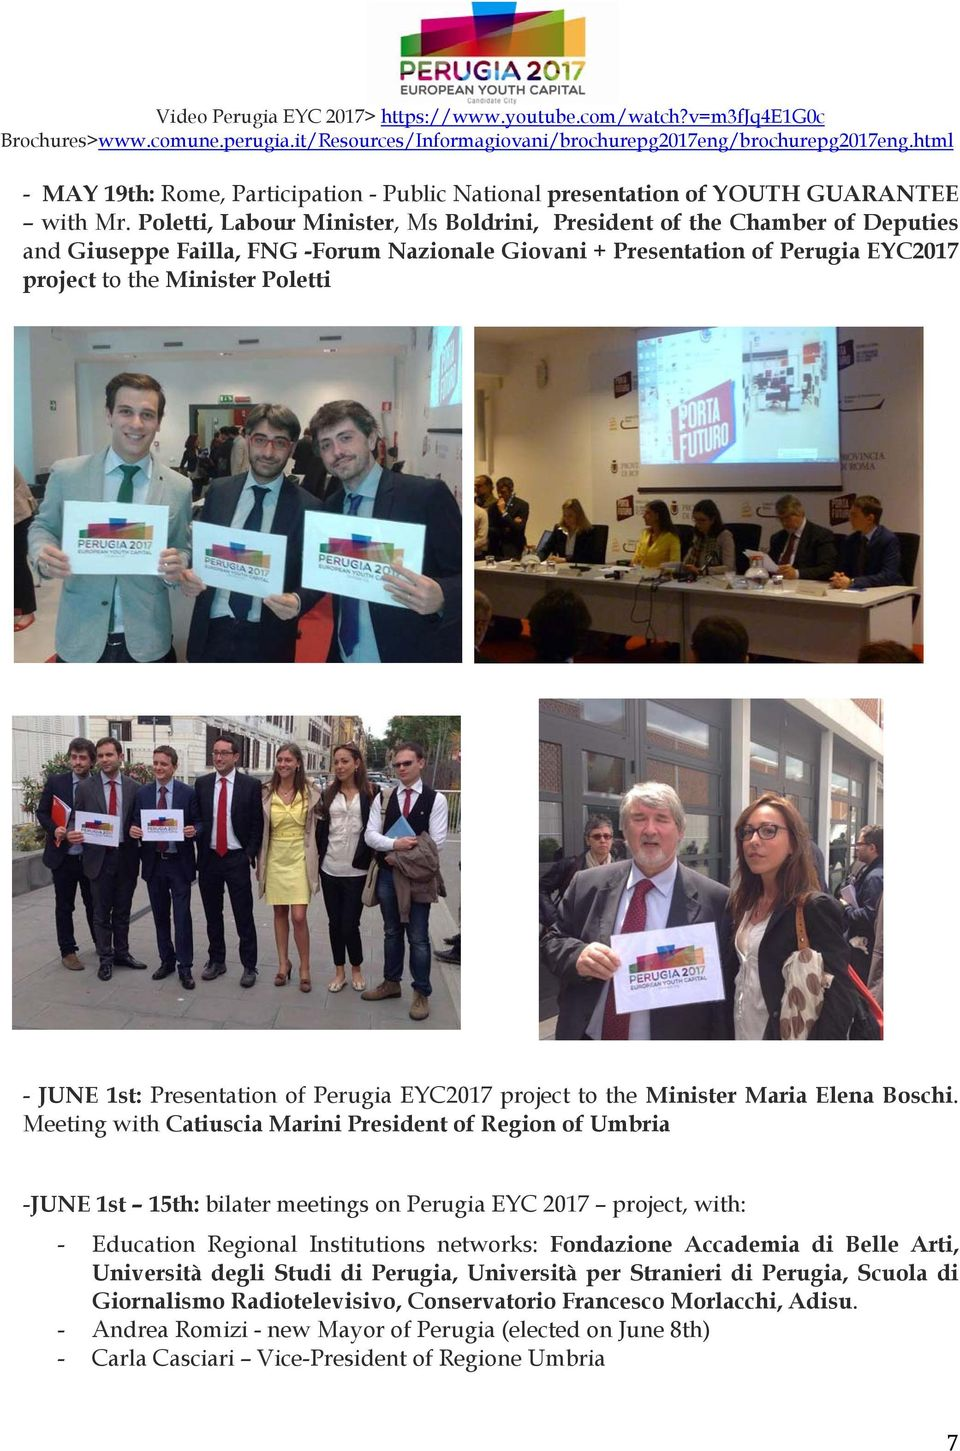 1st: Presentation of Perugia EYC2017 project to the Minister Maria Elena Boschi.